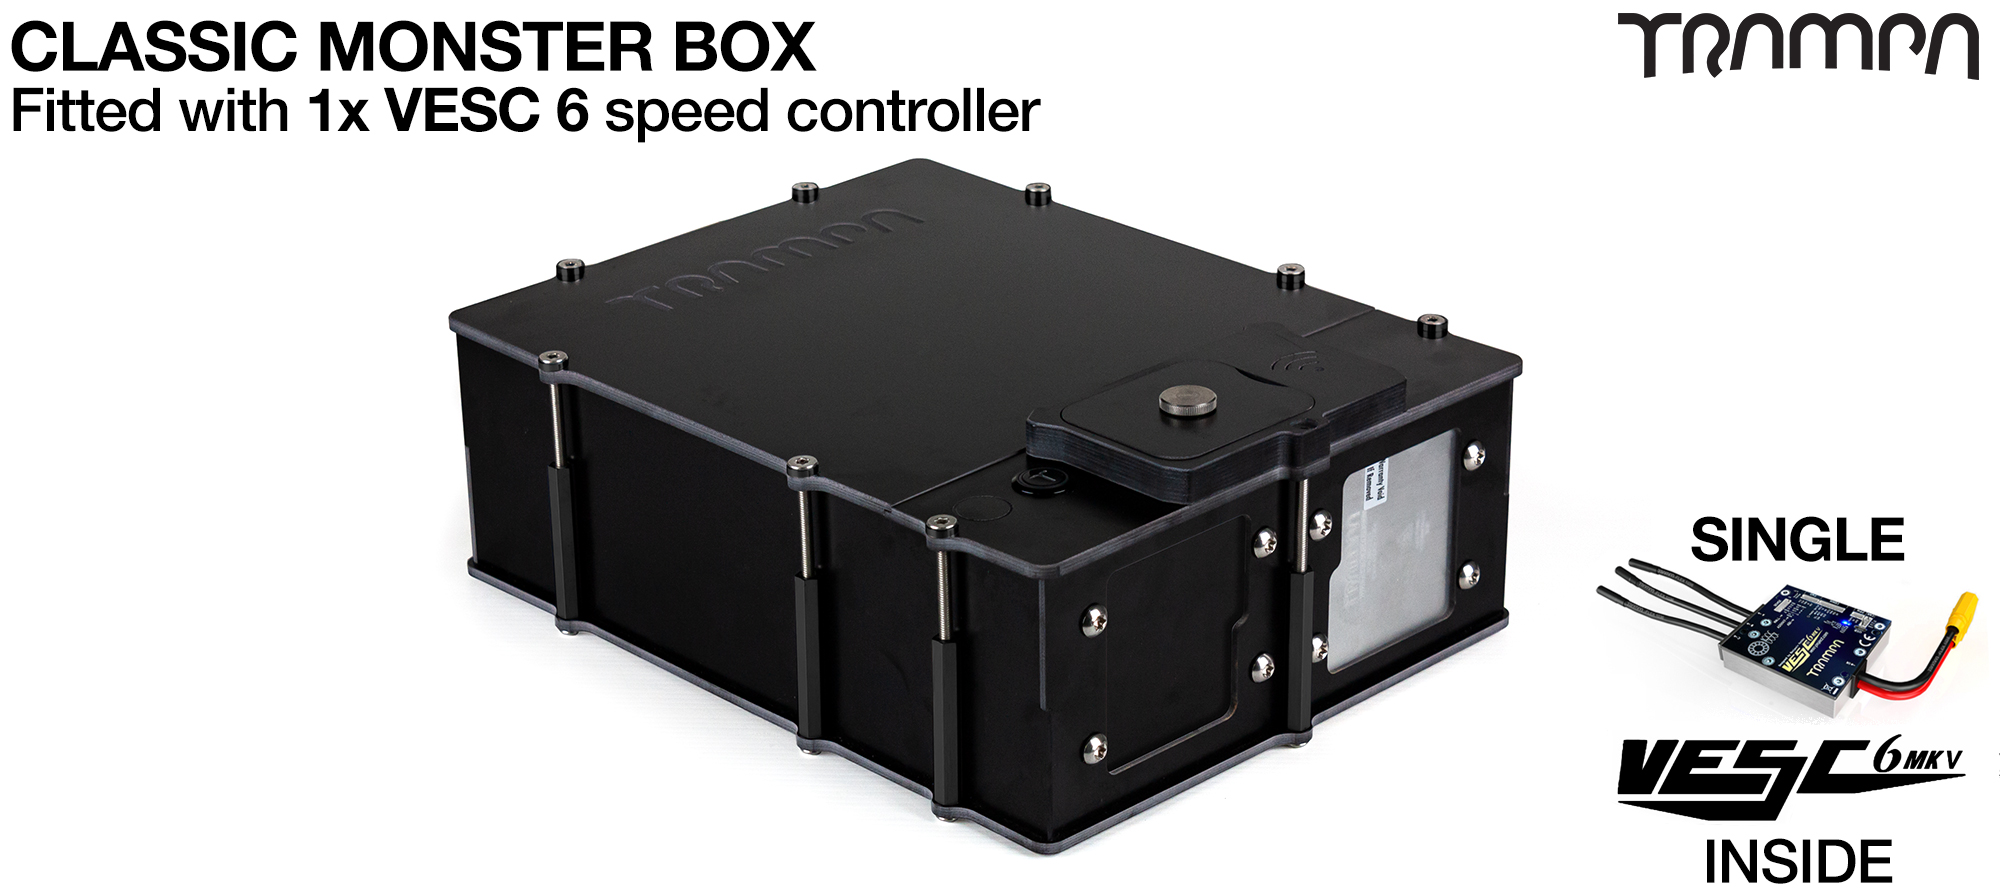 MONSTER Box MkIV supplied with 1x VESC 6 & 1x Externaly Mounted NRF VESC Connect Dongle & Cable